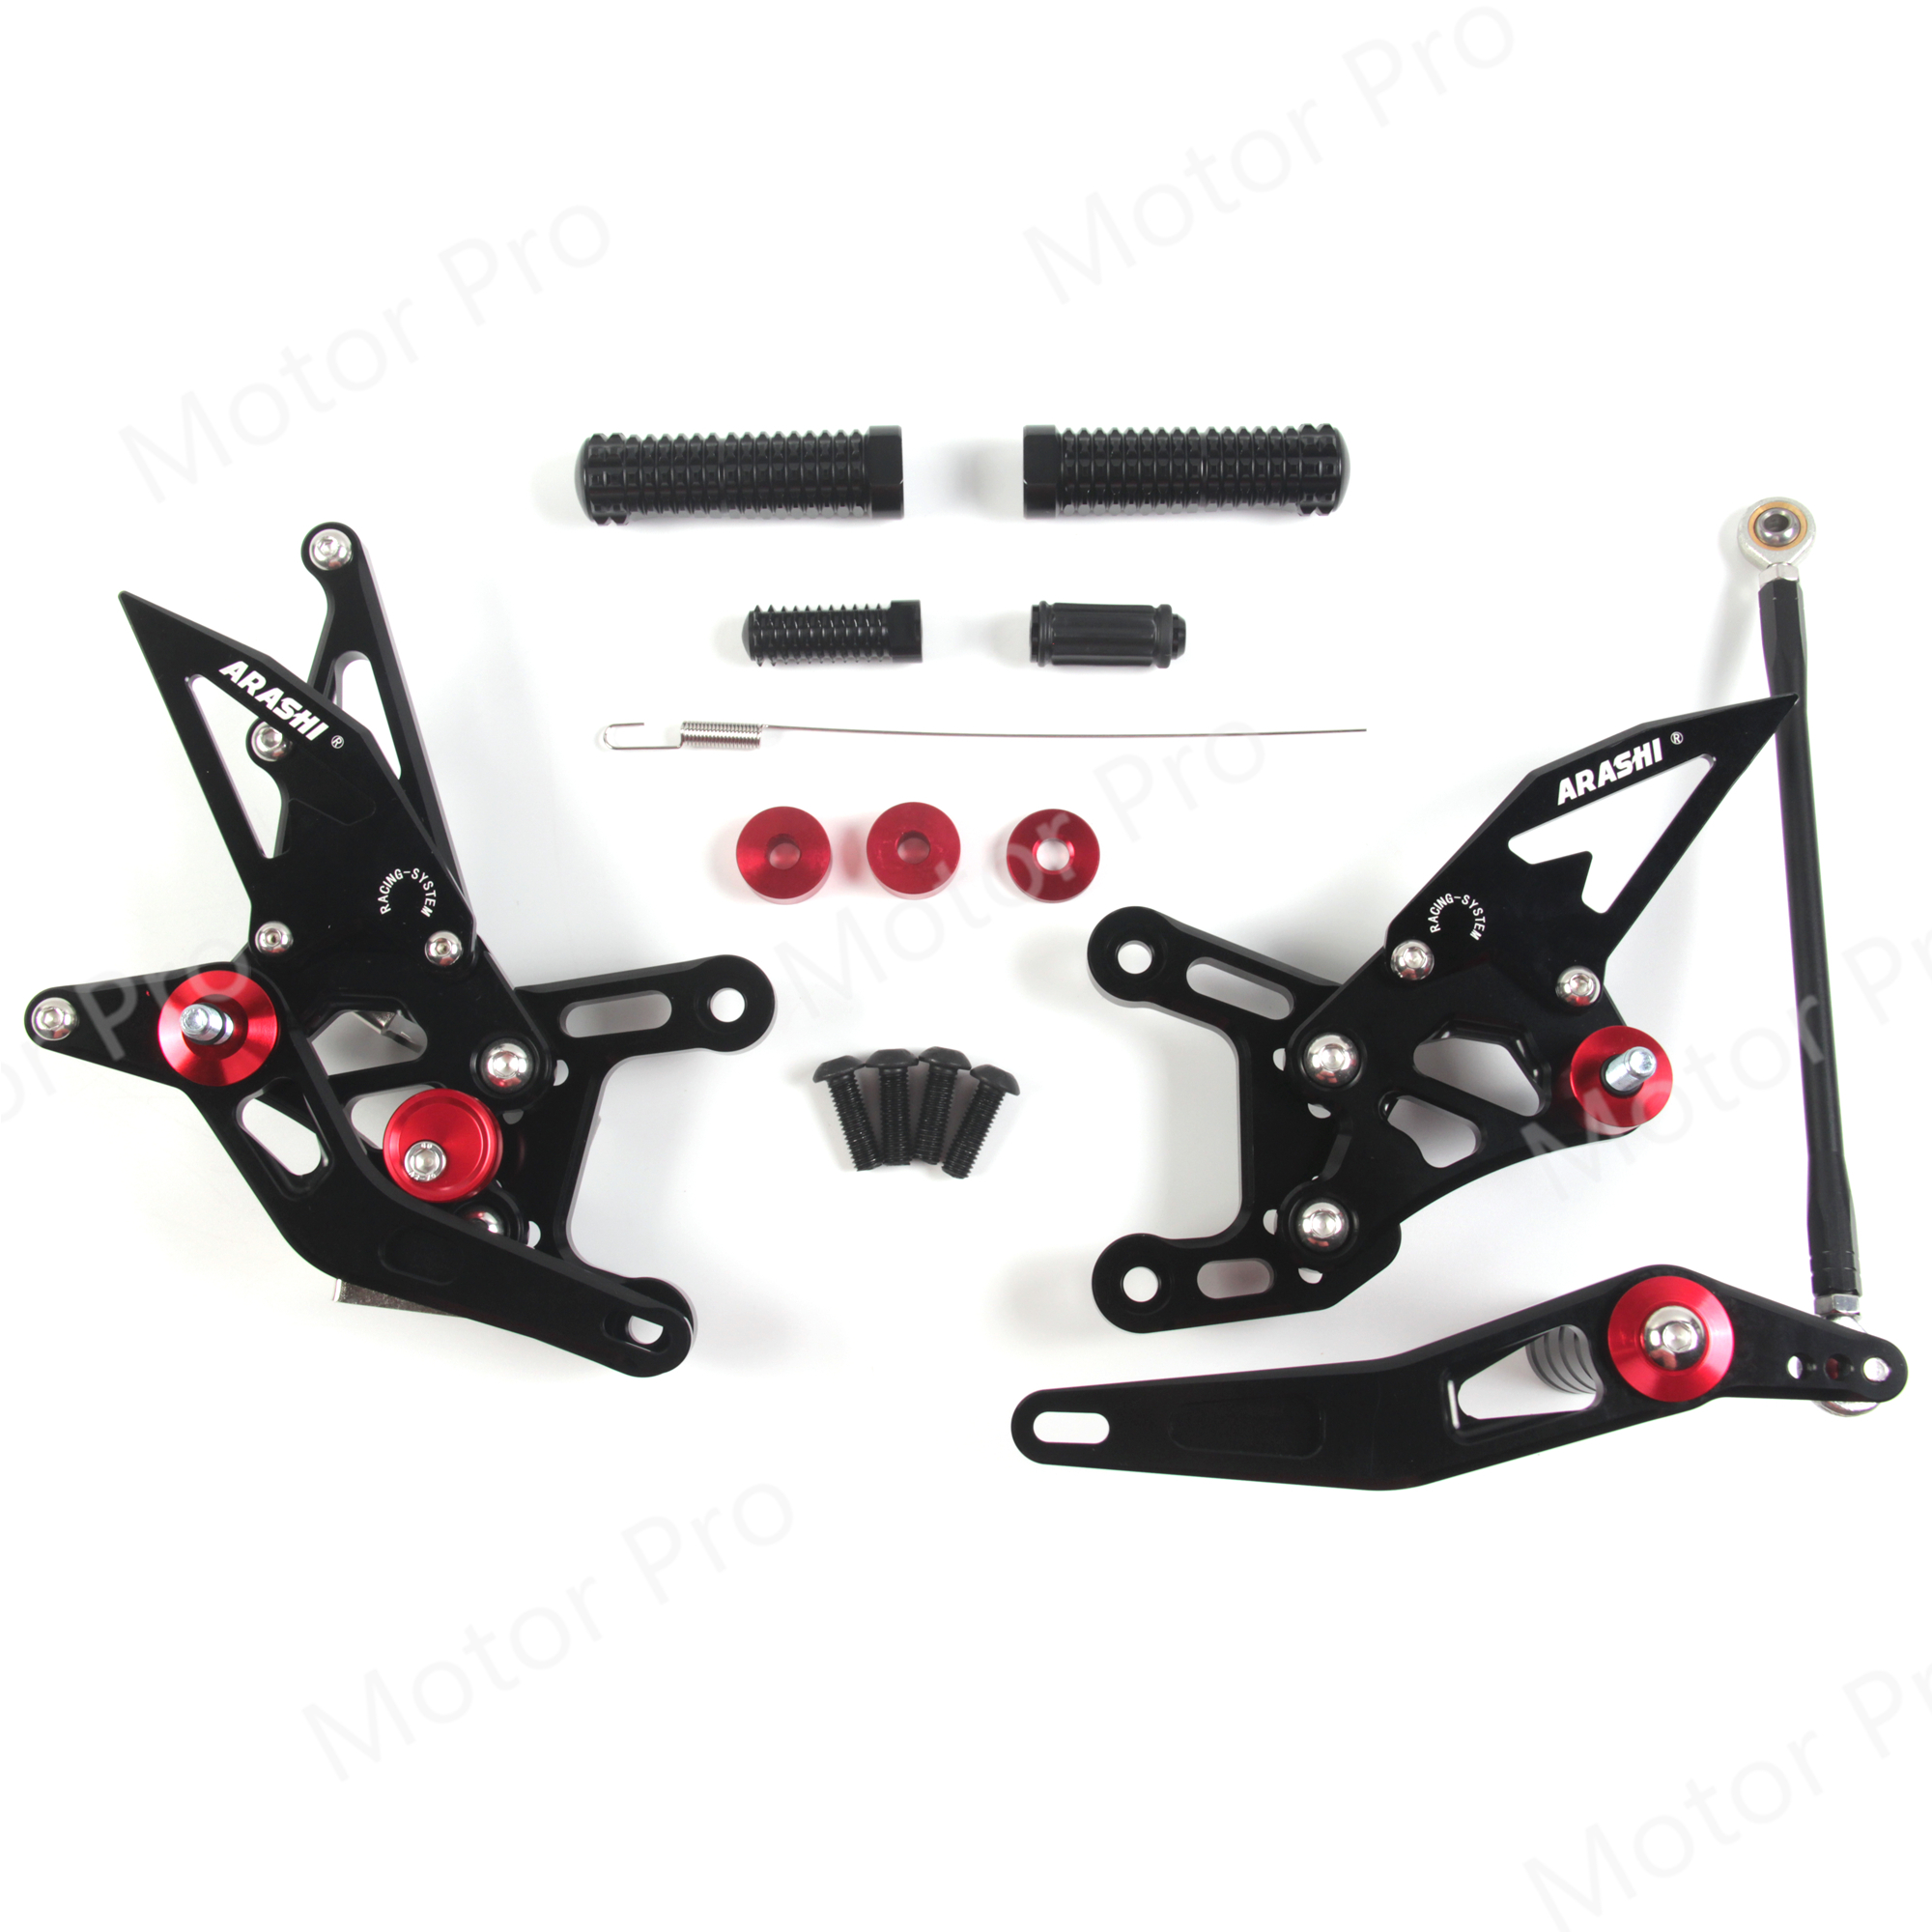 Adjustable Footrests For Yamaha YZF R1 2009   2014 YZF R1 Motorcycle Accessories Foot Rest Peg Rearset Pedal 2010 2011 2012 2013-in Foot Rests from Automobiles & Motorcycles    1